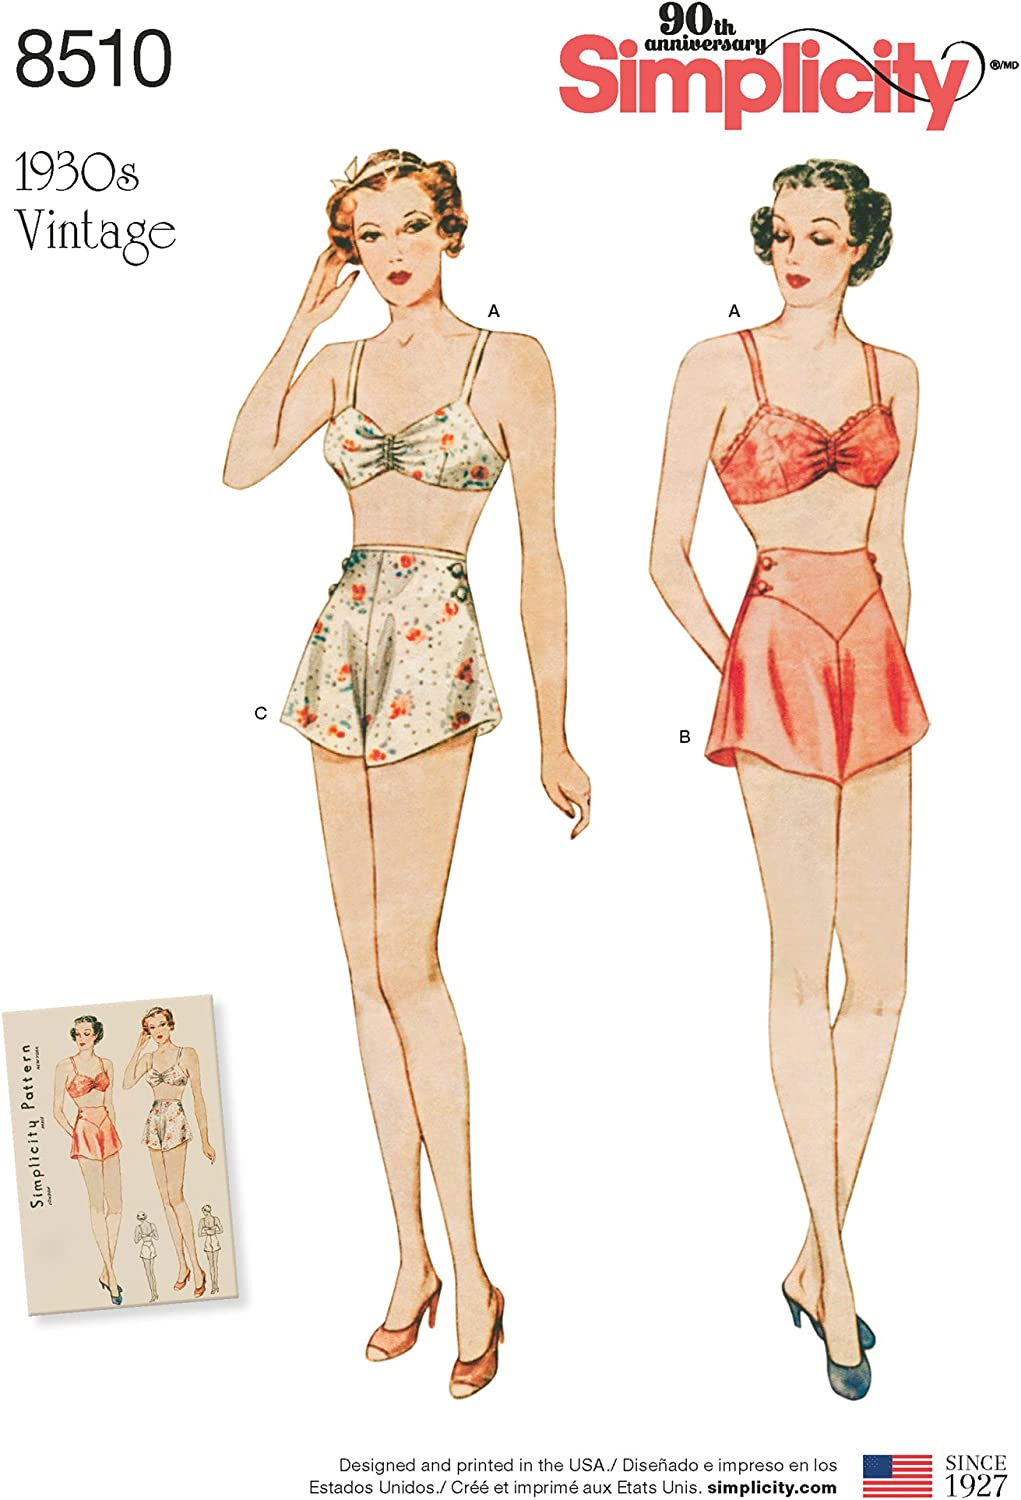 Simplicity Max 81% OFF 1930's Fashion Women's Vintage Bra Max 90% OFF Panties and Sewing